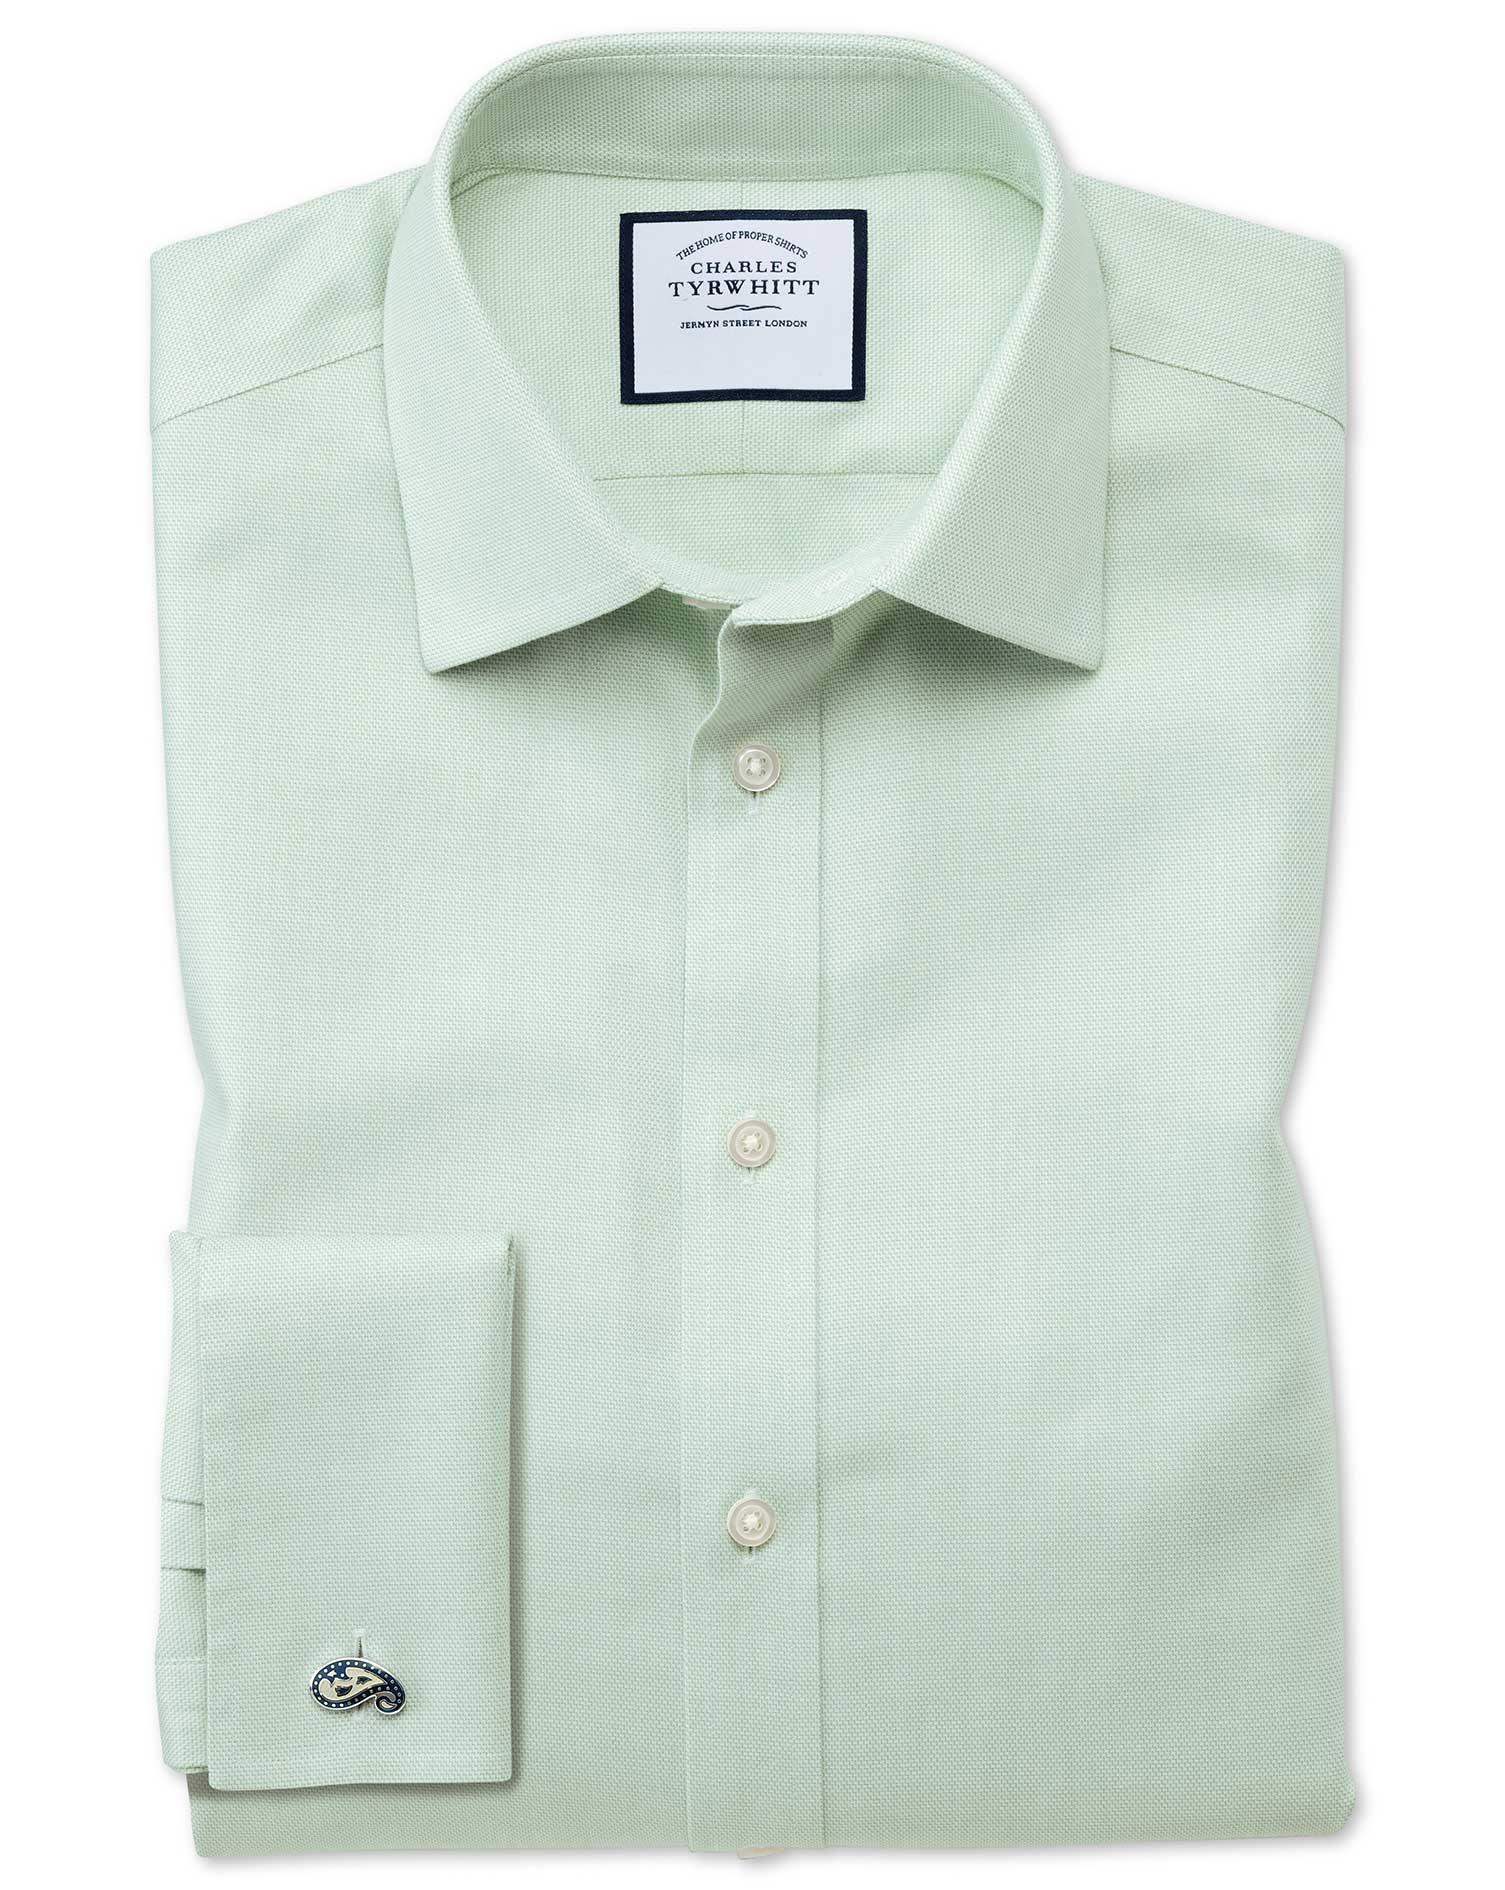 Extra Slim Fit Non-Iron Step Weave Green Cotton Formal Shirt Double Cuff Size 15/33 by Charles Tyrwh